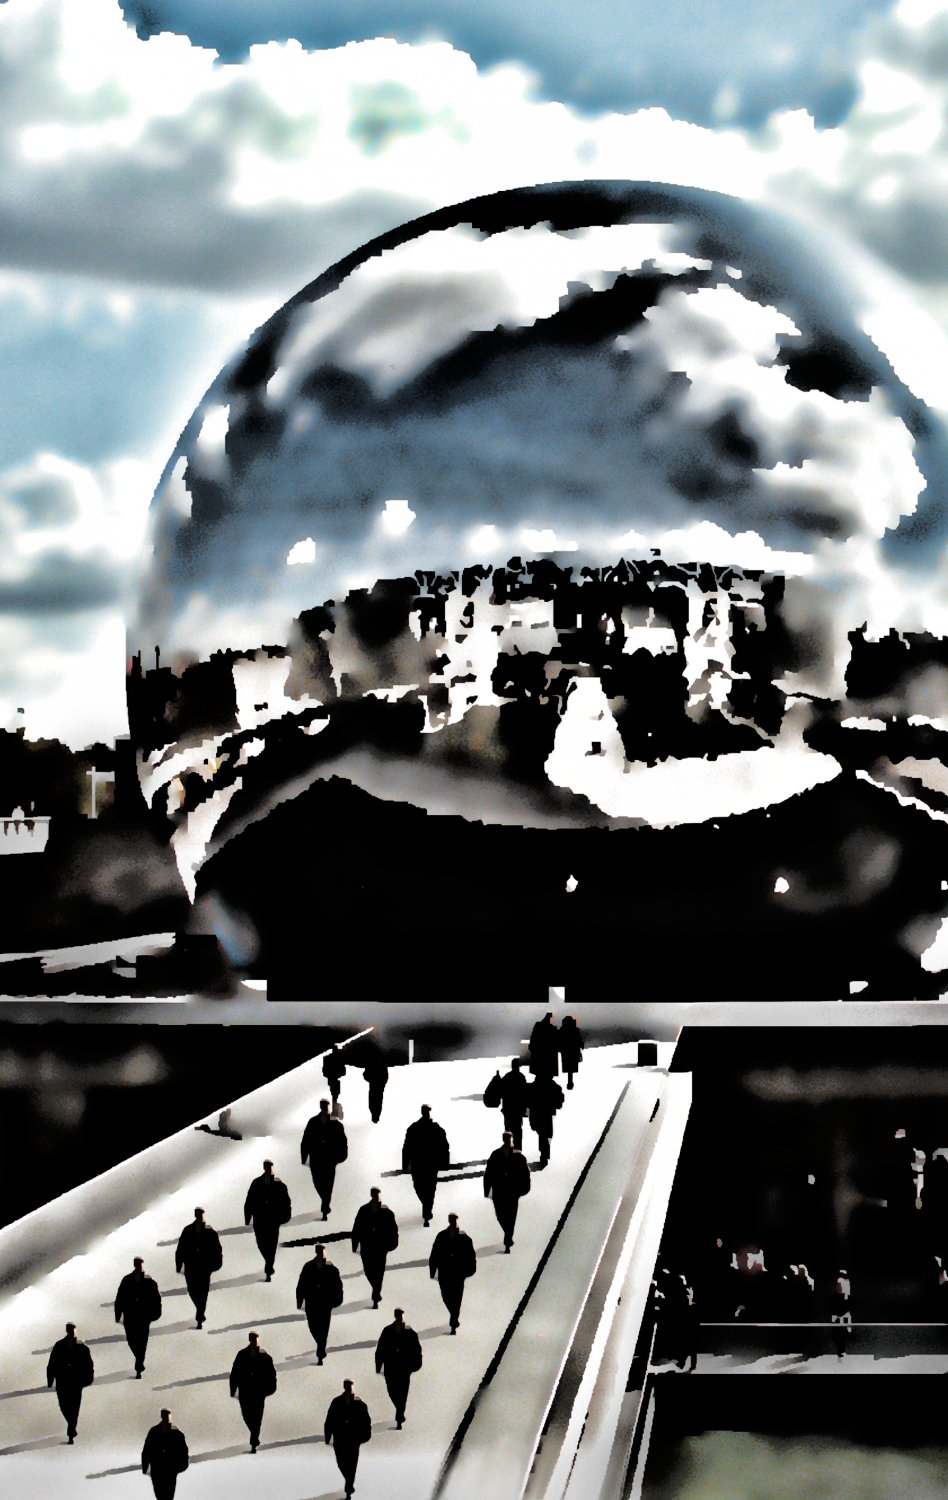 - La Géode - Techno-Impressionist Museum - Techno-Impressionism - art - beautiful - photo photography picture - by Tony Karp